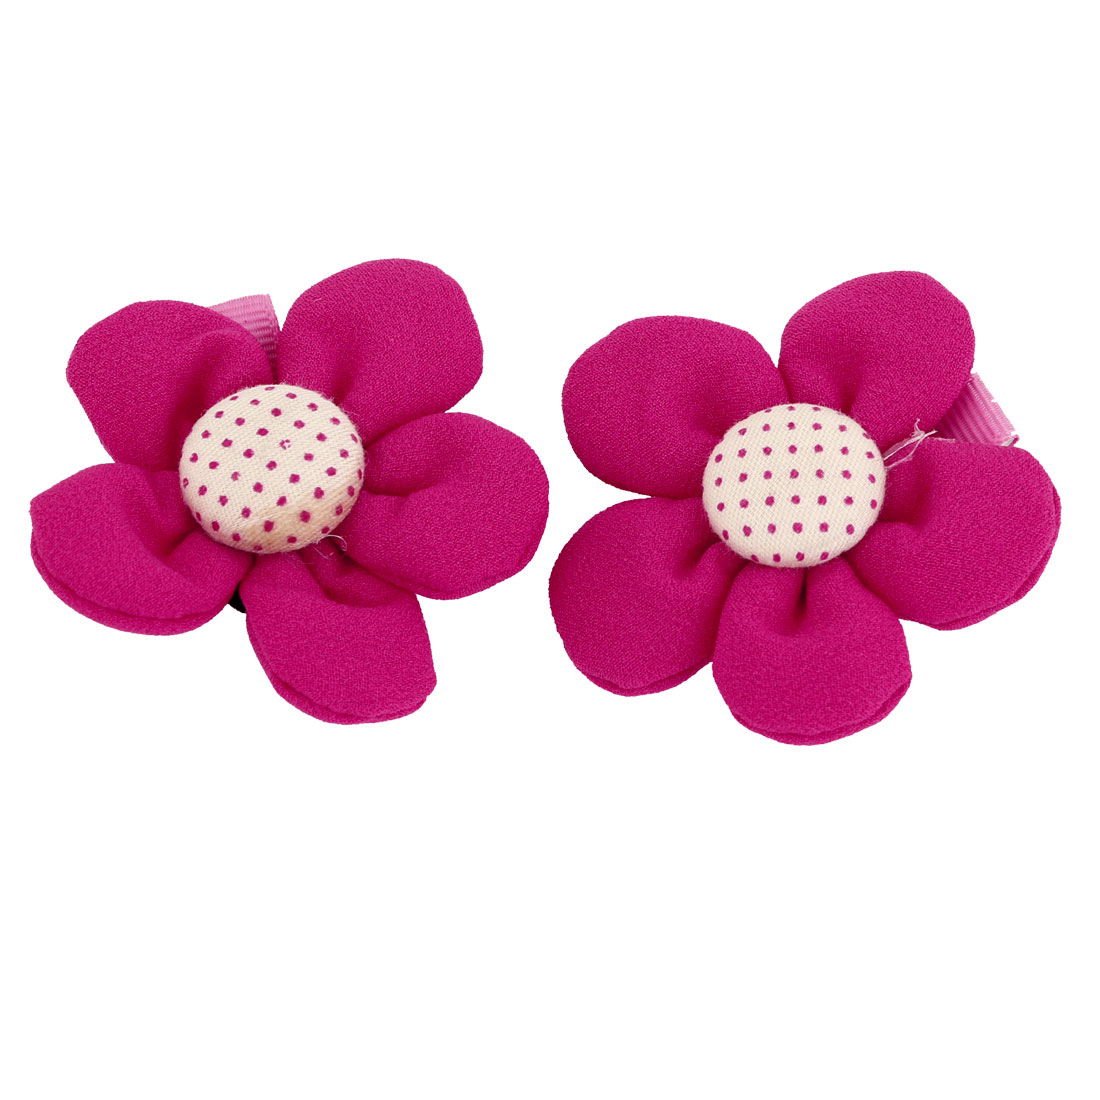 Girls Lady Fuchsia Floral Design Decoration Nylon Coated Metal Hair Clips 2 Pcs